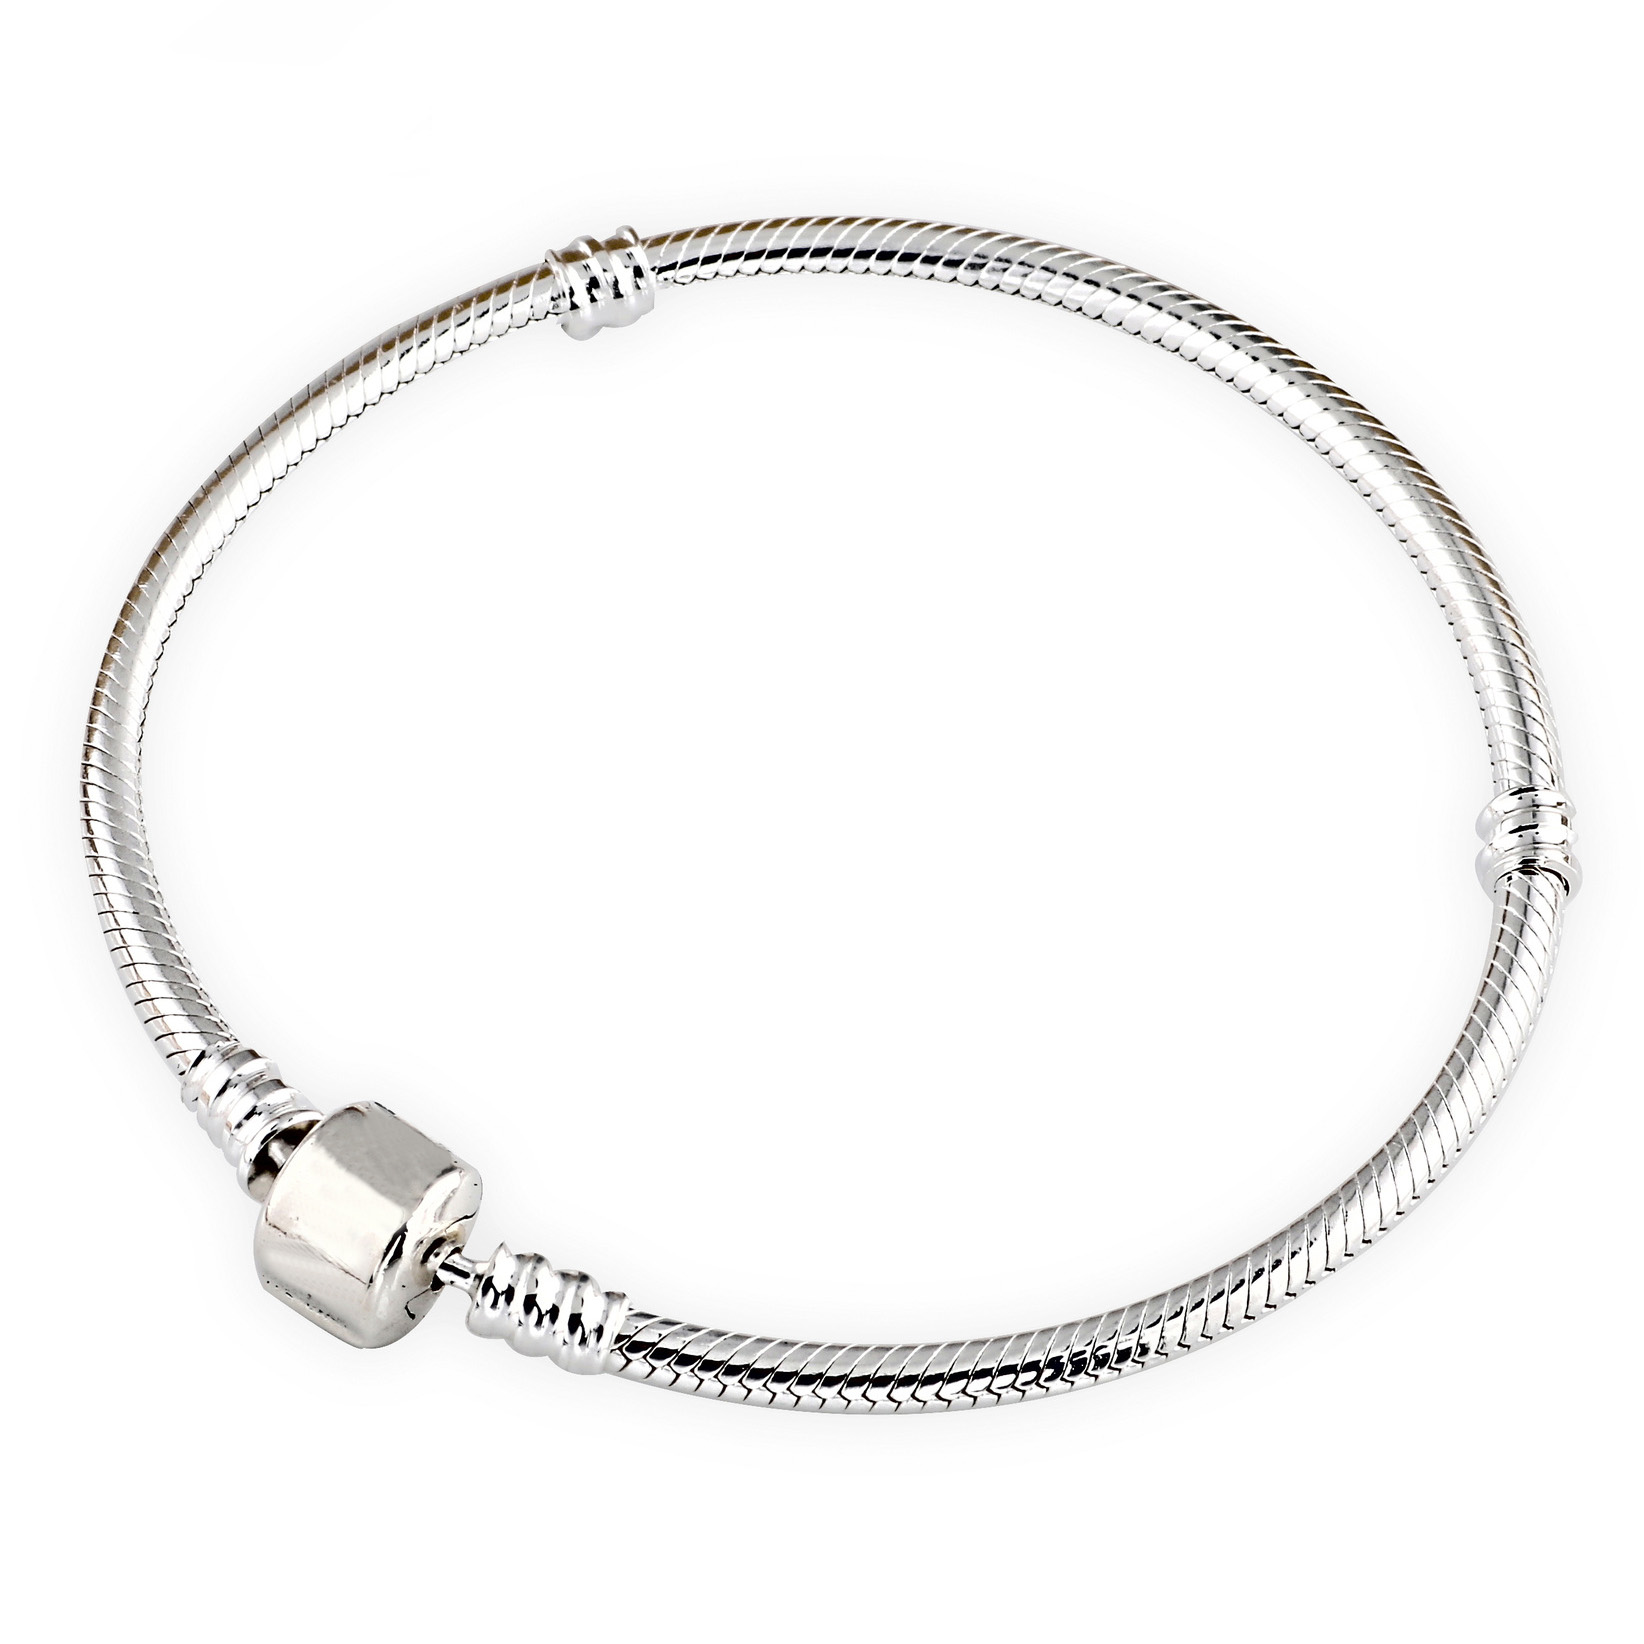 Authenetic 925 Sterling Silver Bracelet Snake chain Lobster Clasp Basic Bracelet Bangle Fit Women Bead Charm DIY Pandora Jewelry 925 sterling silver pandora bangle poetic blooms clasp snake chain bracelet bangle fit women bead charm diy europe jewelry